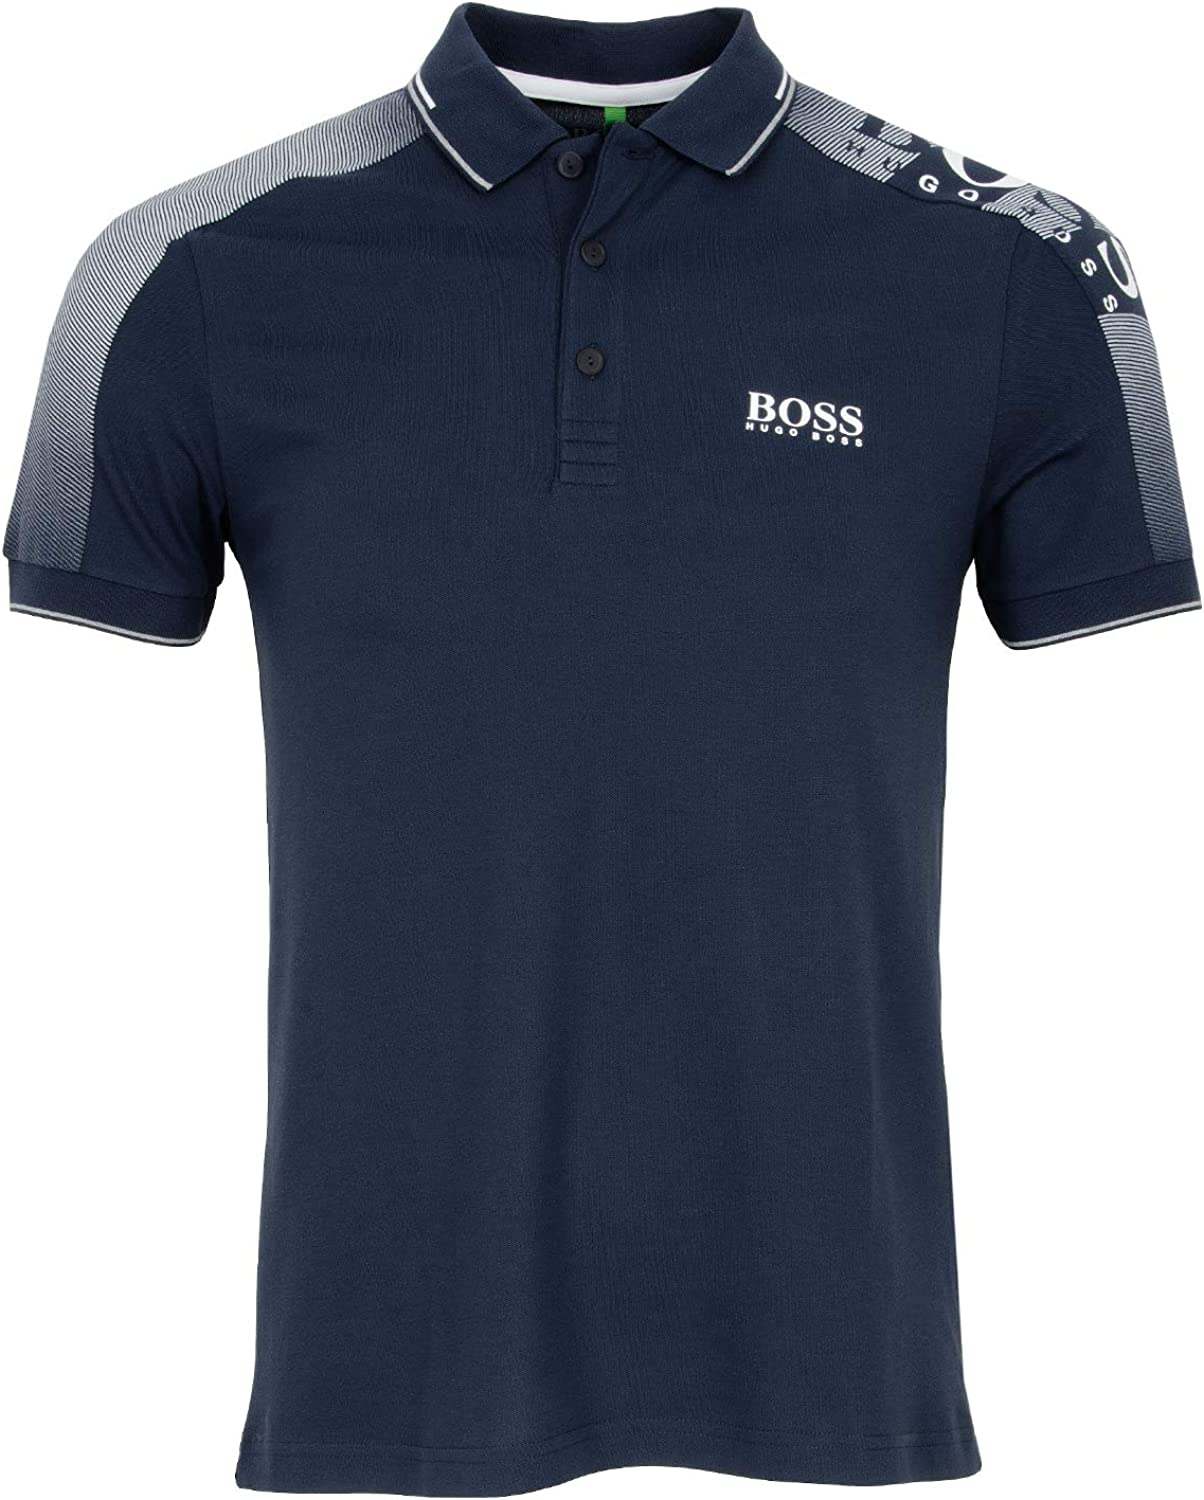 Hugo Boss BOSS Men's Paule Pro